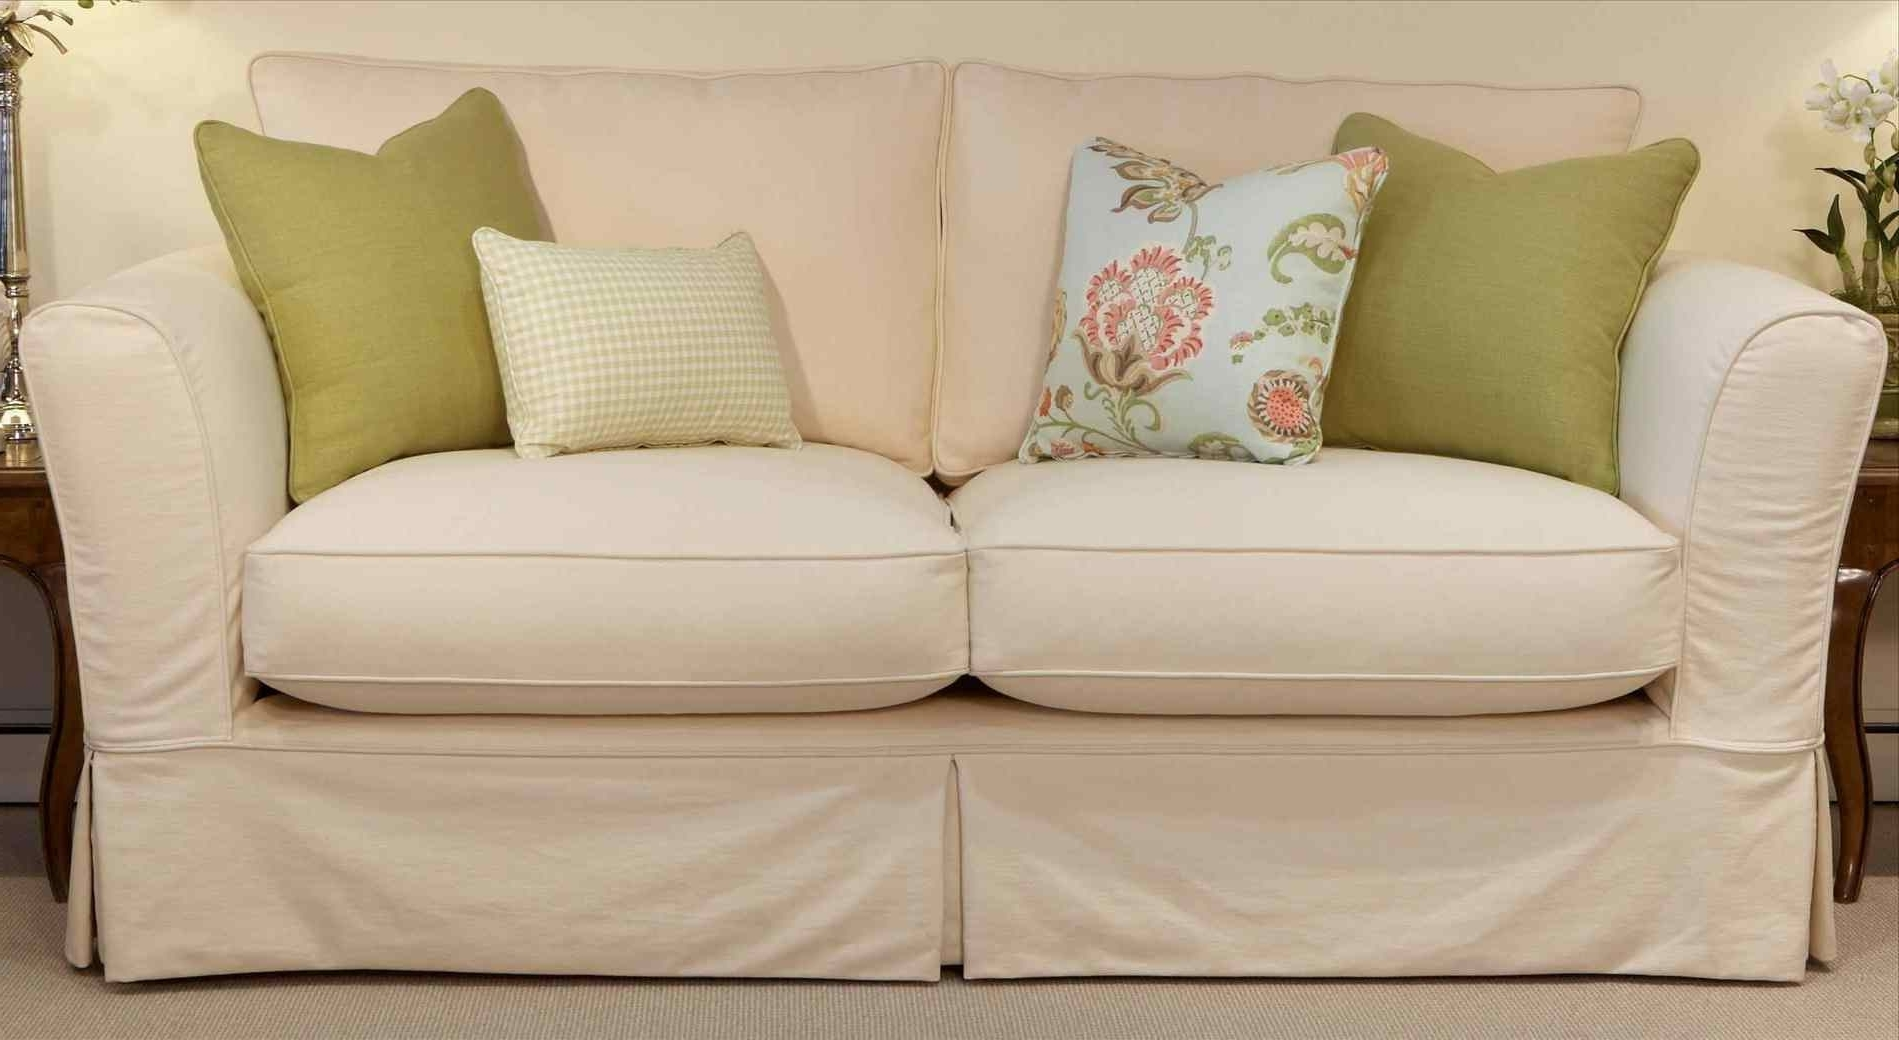 Widely Used Sofas With Removable Covers For Sofa : Removable Covers Sofa Ideas Traditional Fabric Seater Cover (View 9 of 20)